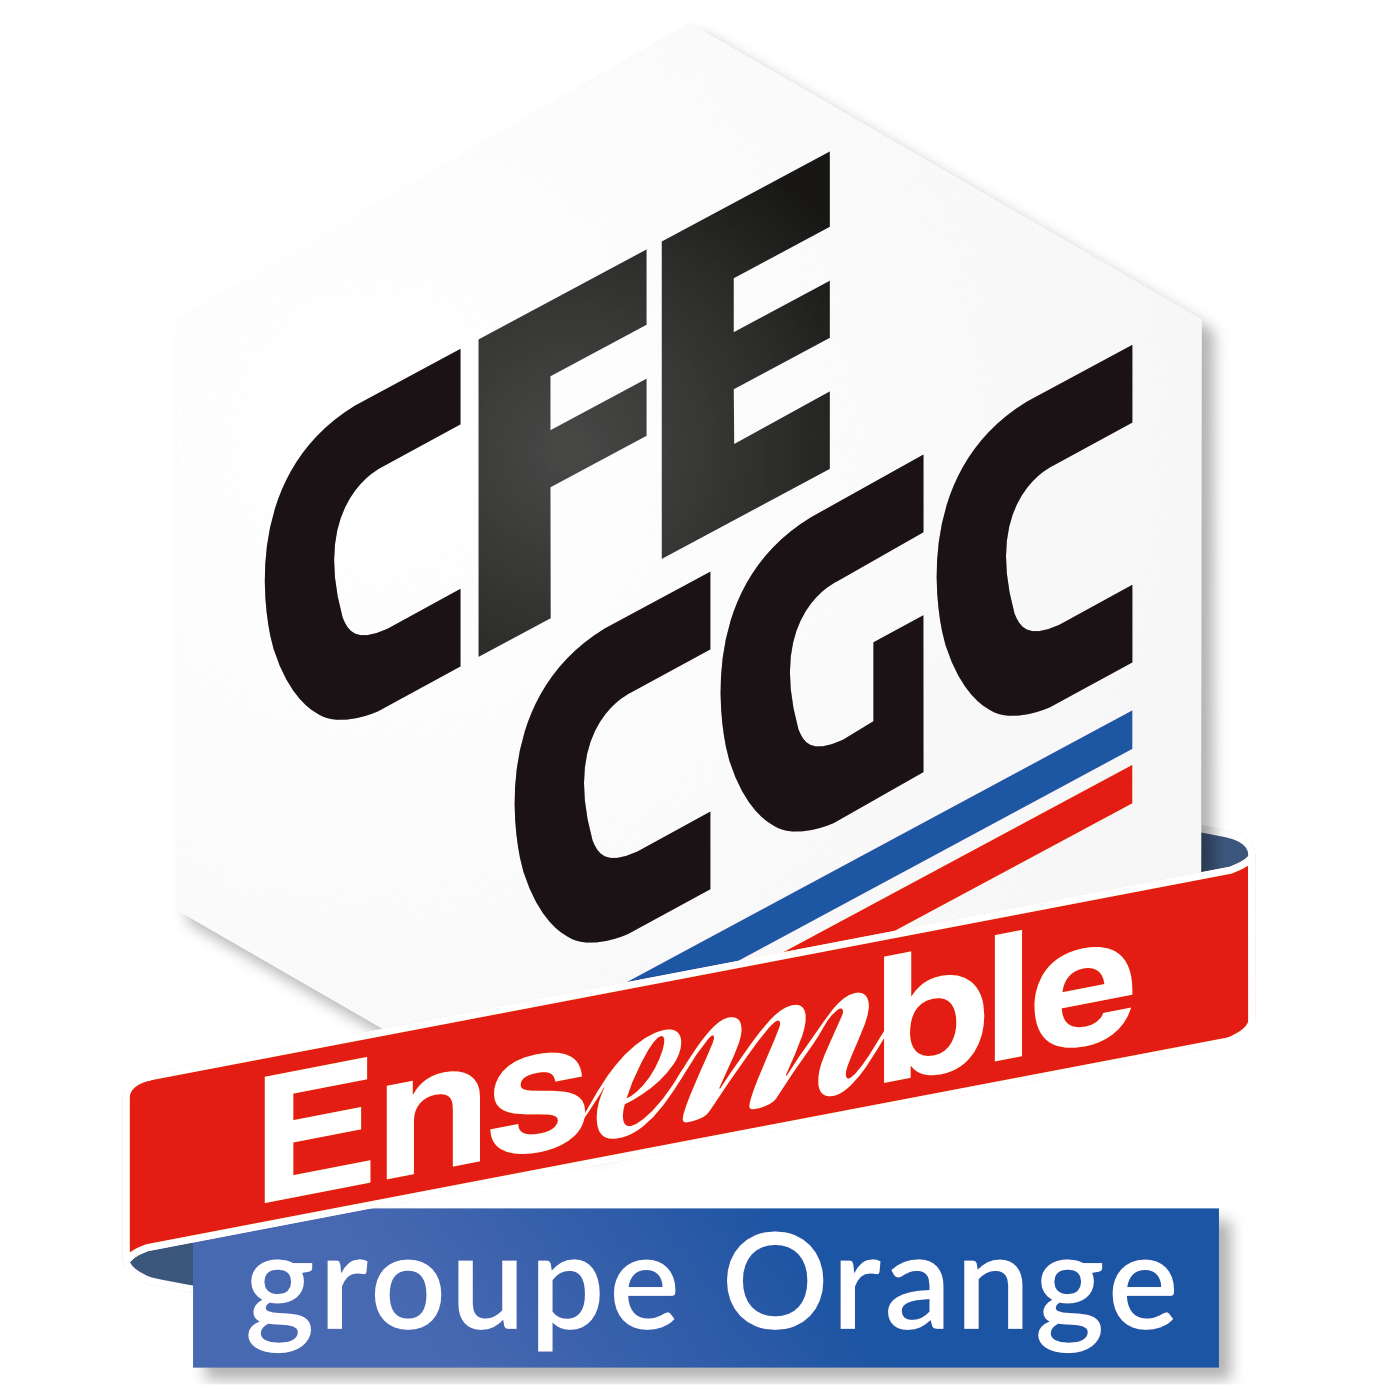 CFE-CGC groupe Orange